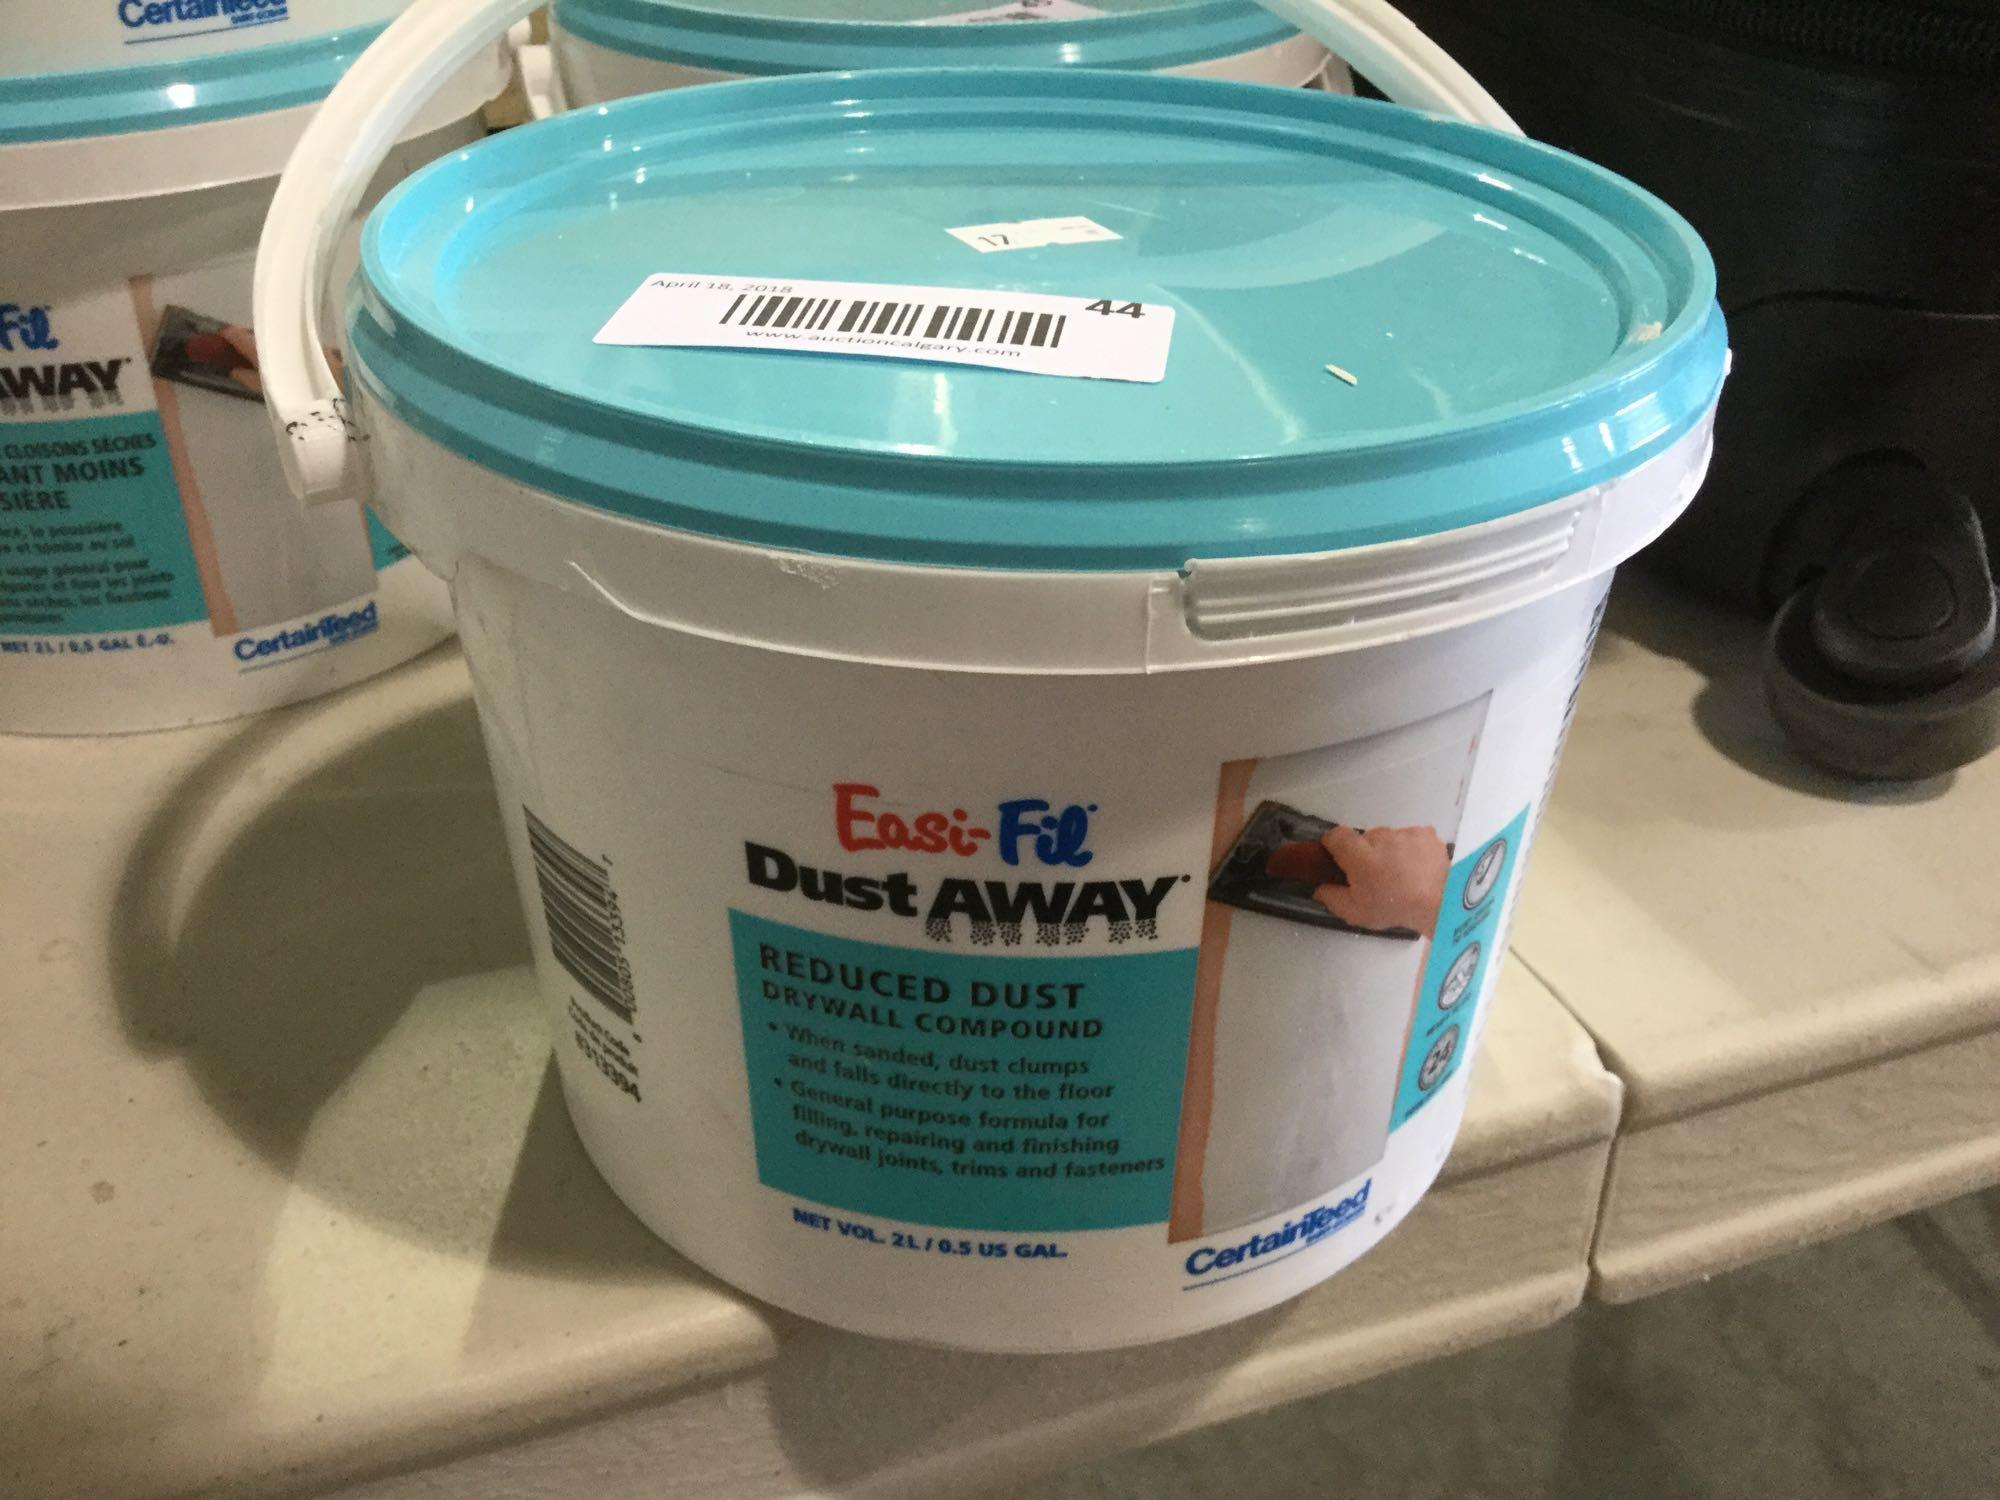 Lot 46 - Easy-fil - Dust away - Dust reduced Drywall Compound